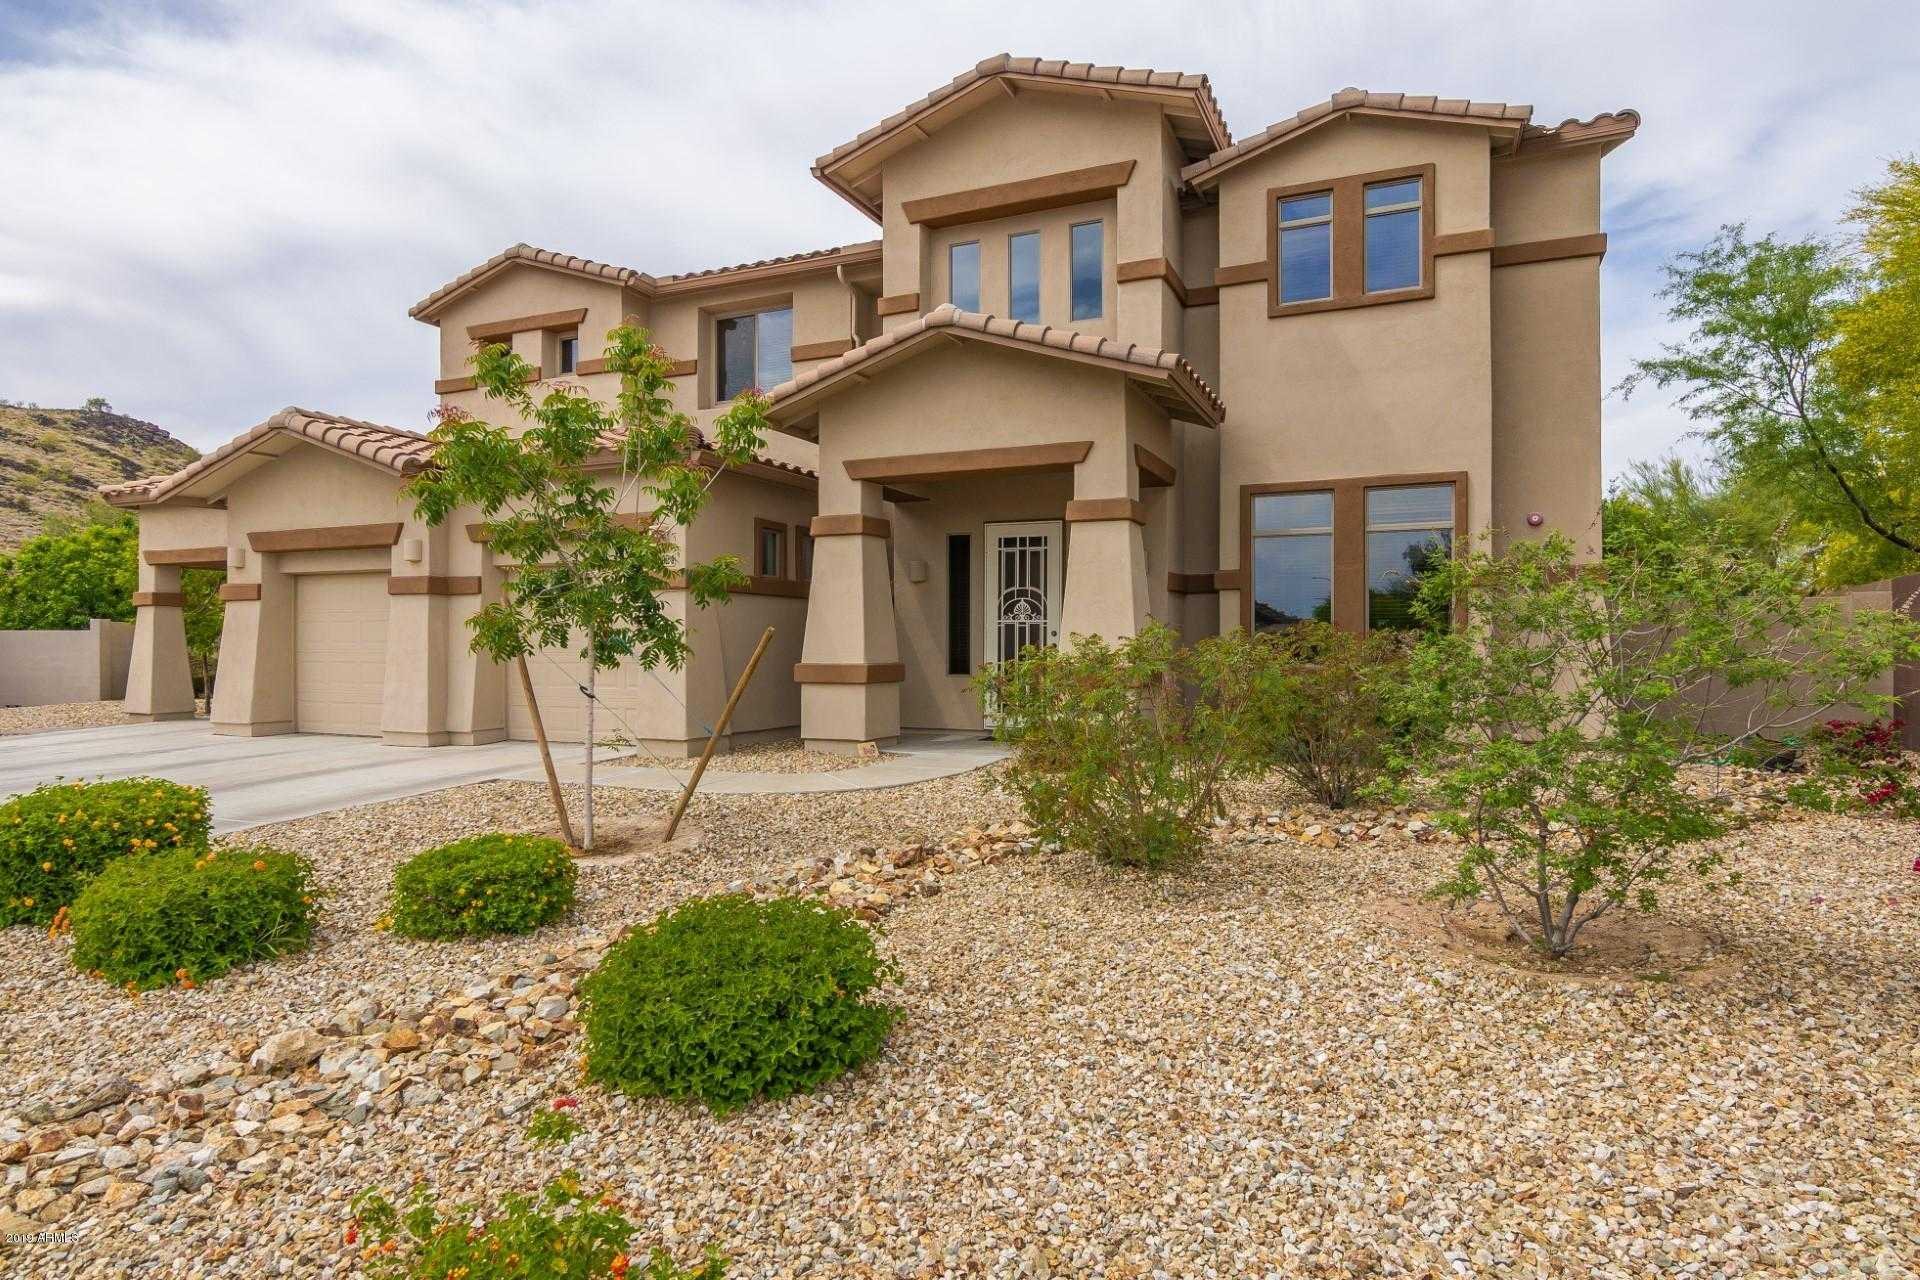 $799,000 - 5Br/3Ba - Home for Sale in Stetson Valley, Phoenix